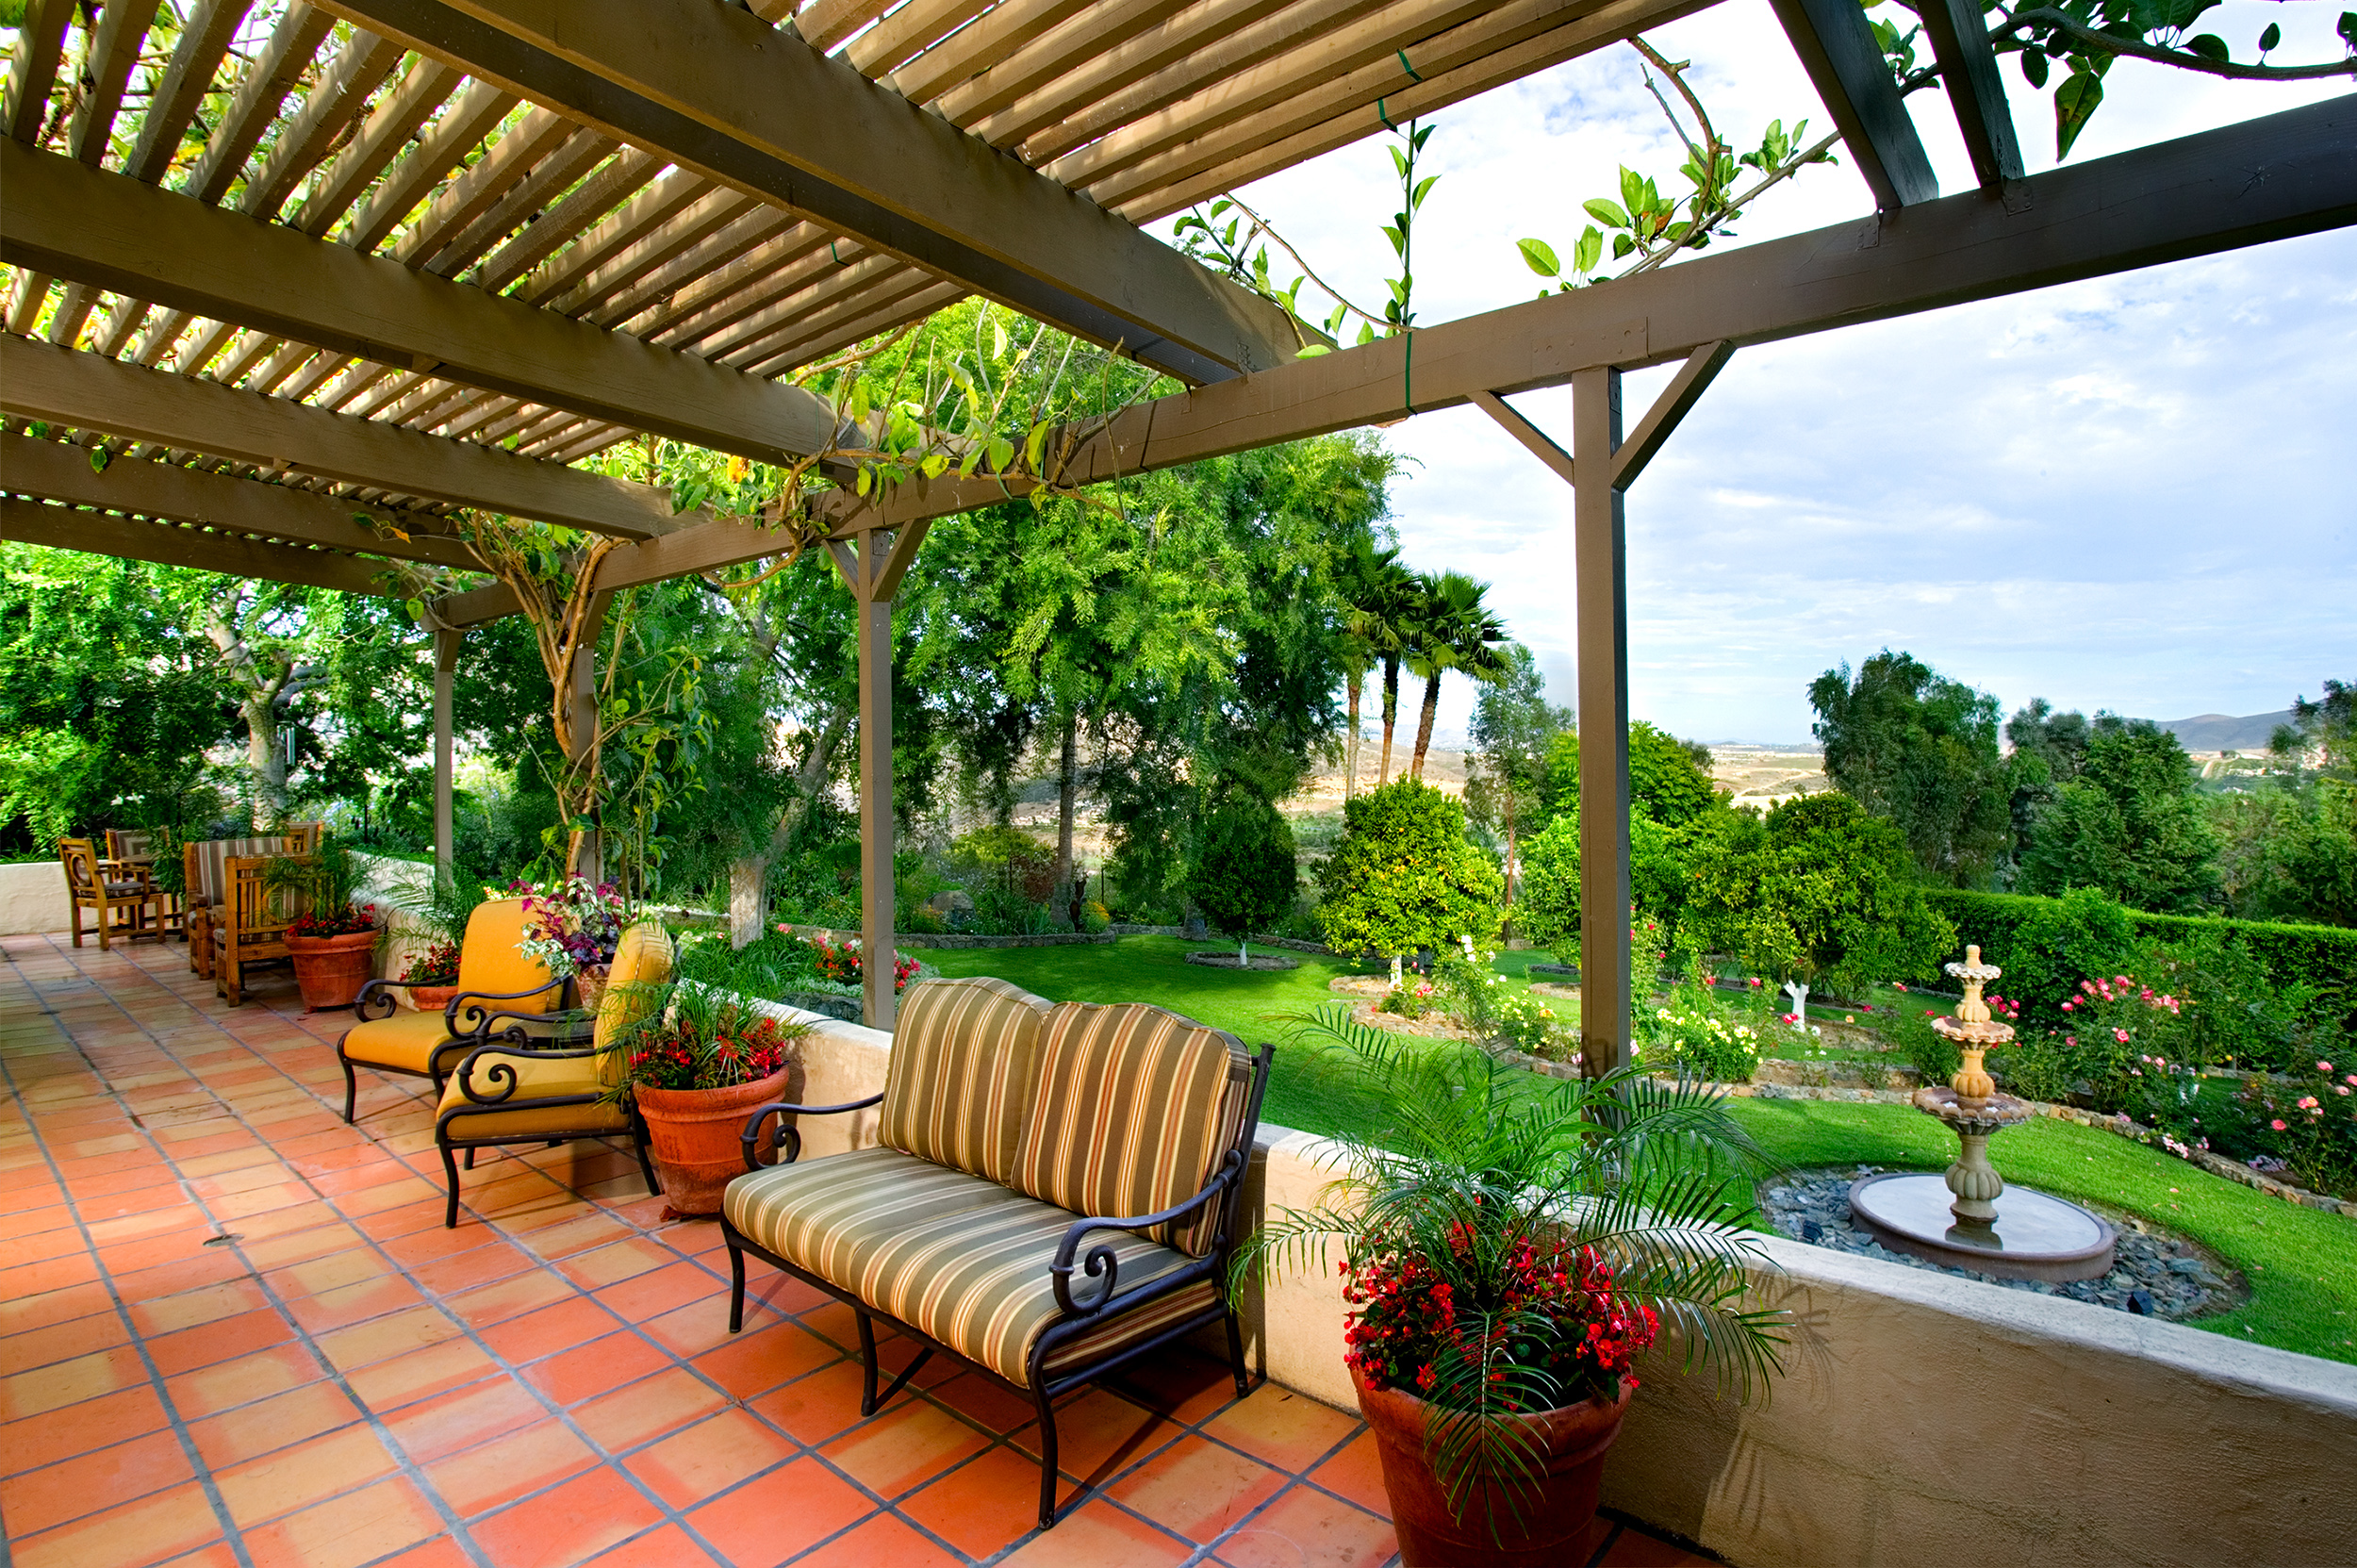 Sold 2014 Represented Buyer & Seller -  Rancho Santa Fe, CA 92067